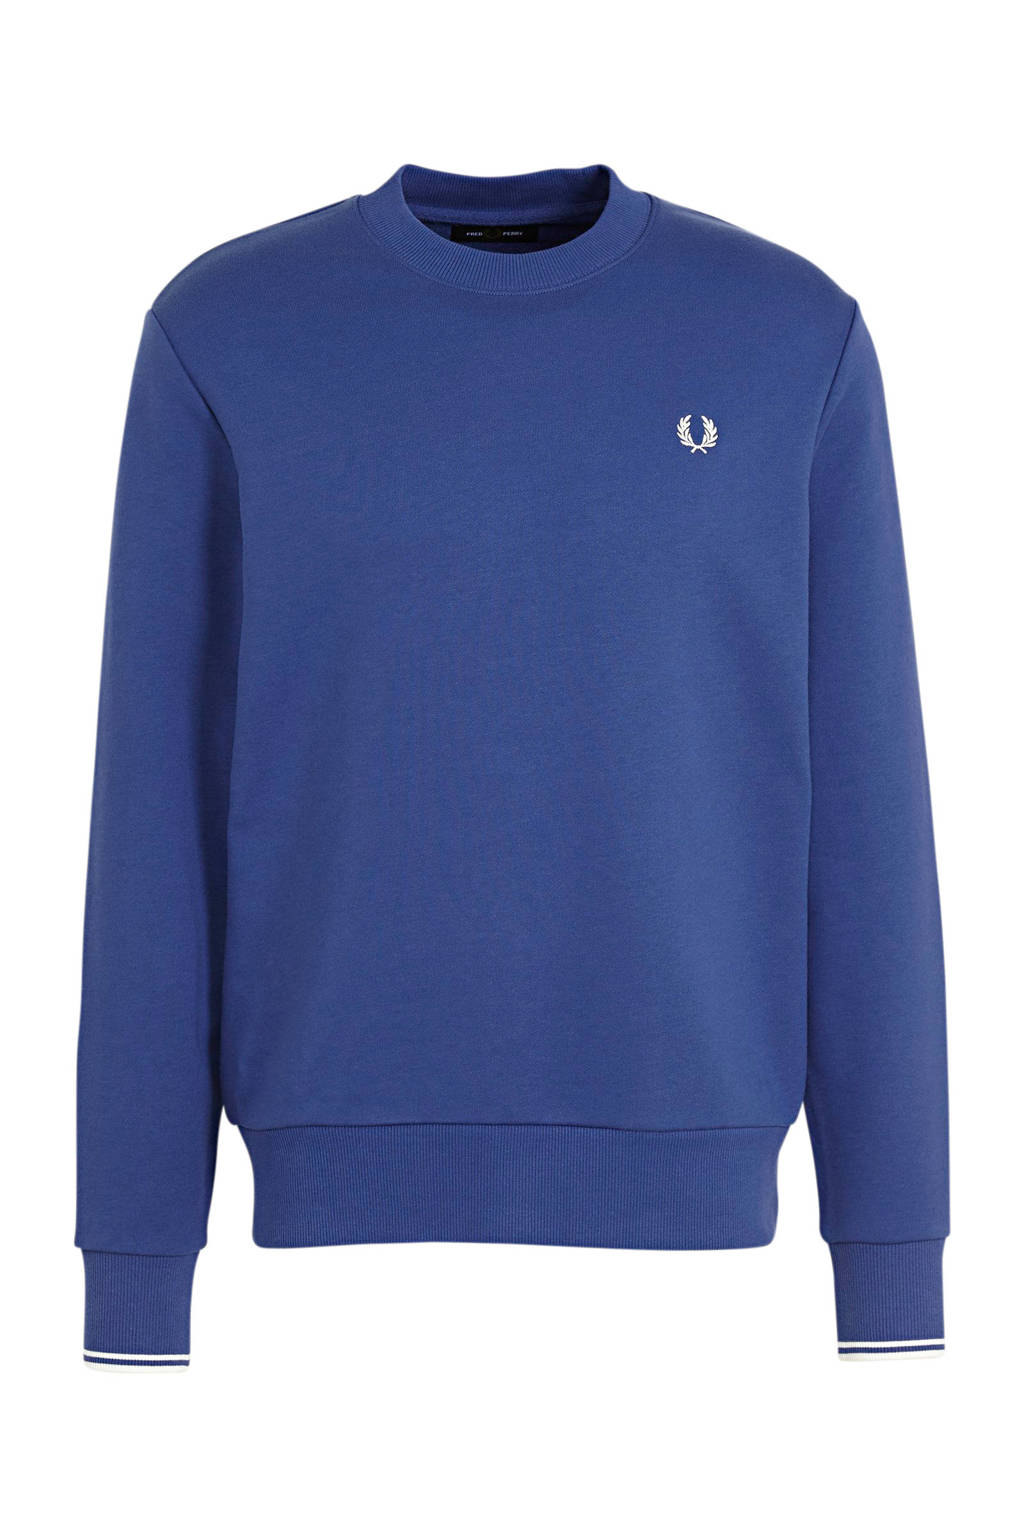 Fred Perry sweater blauw, Blauw